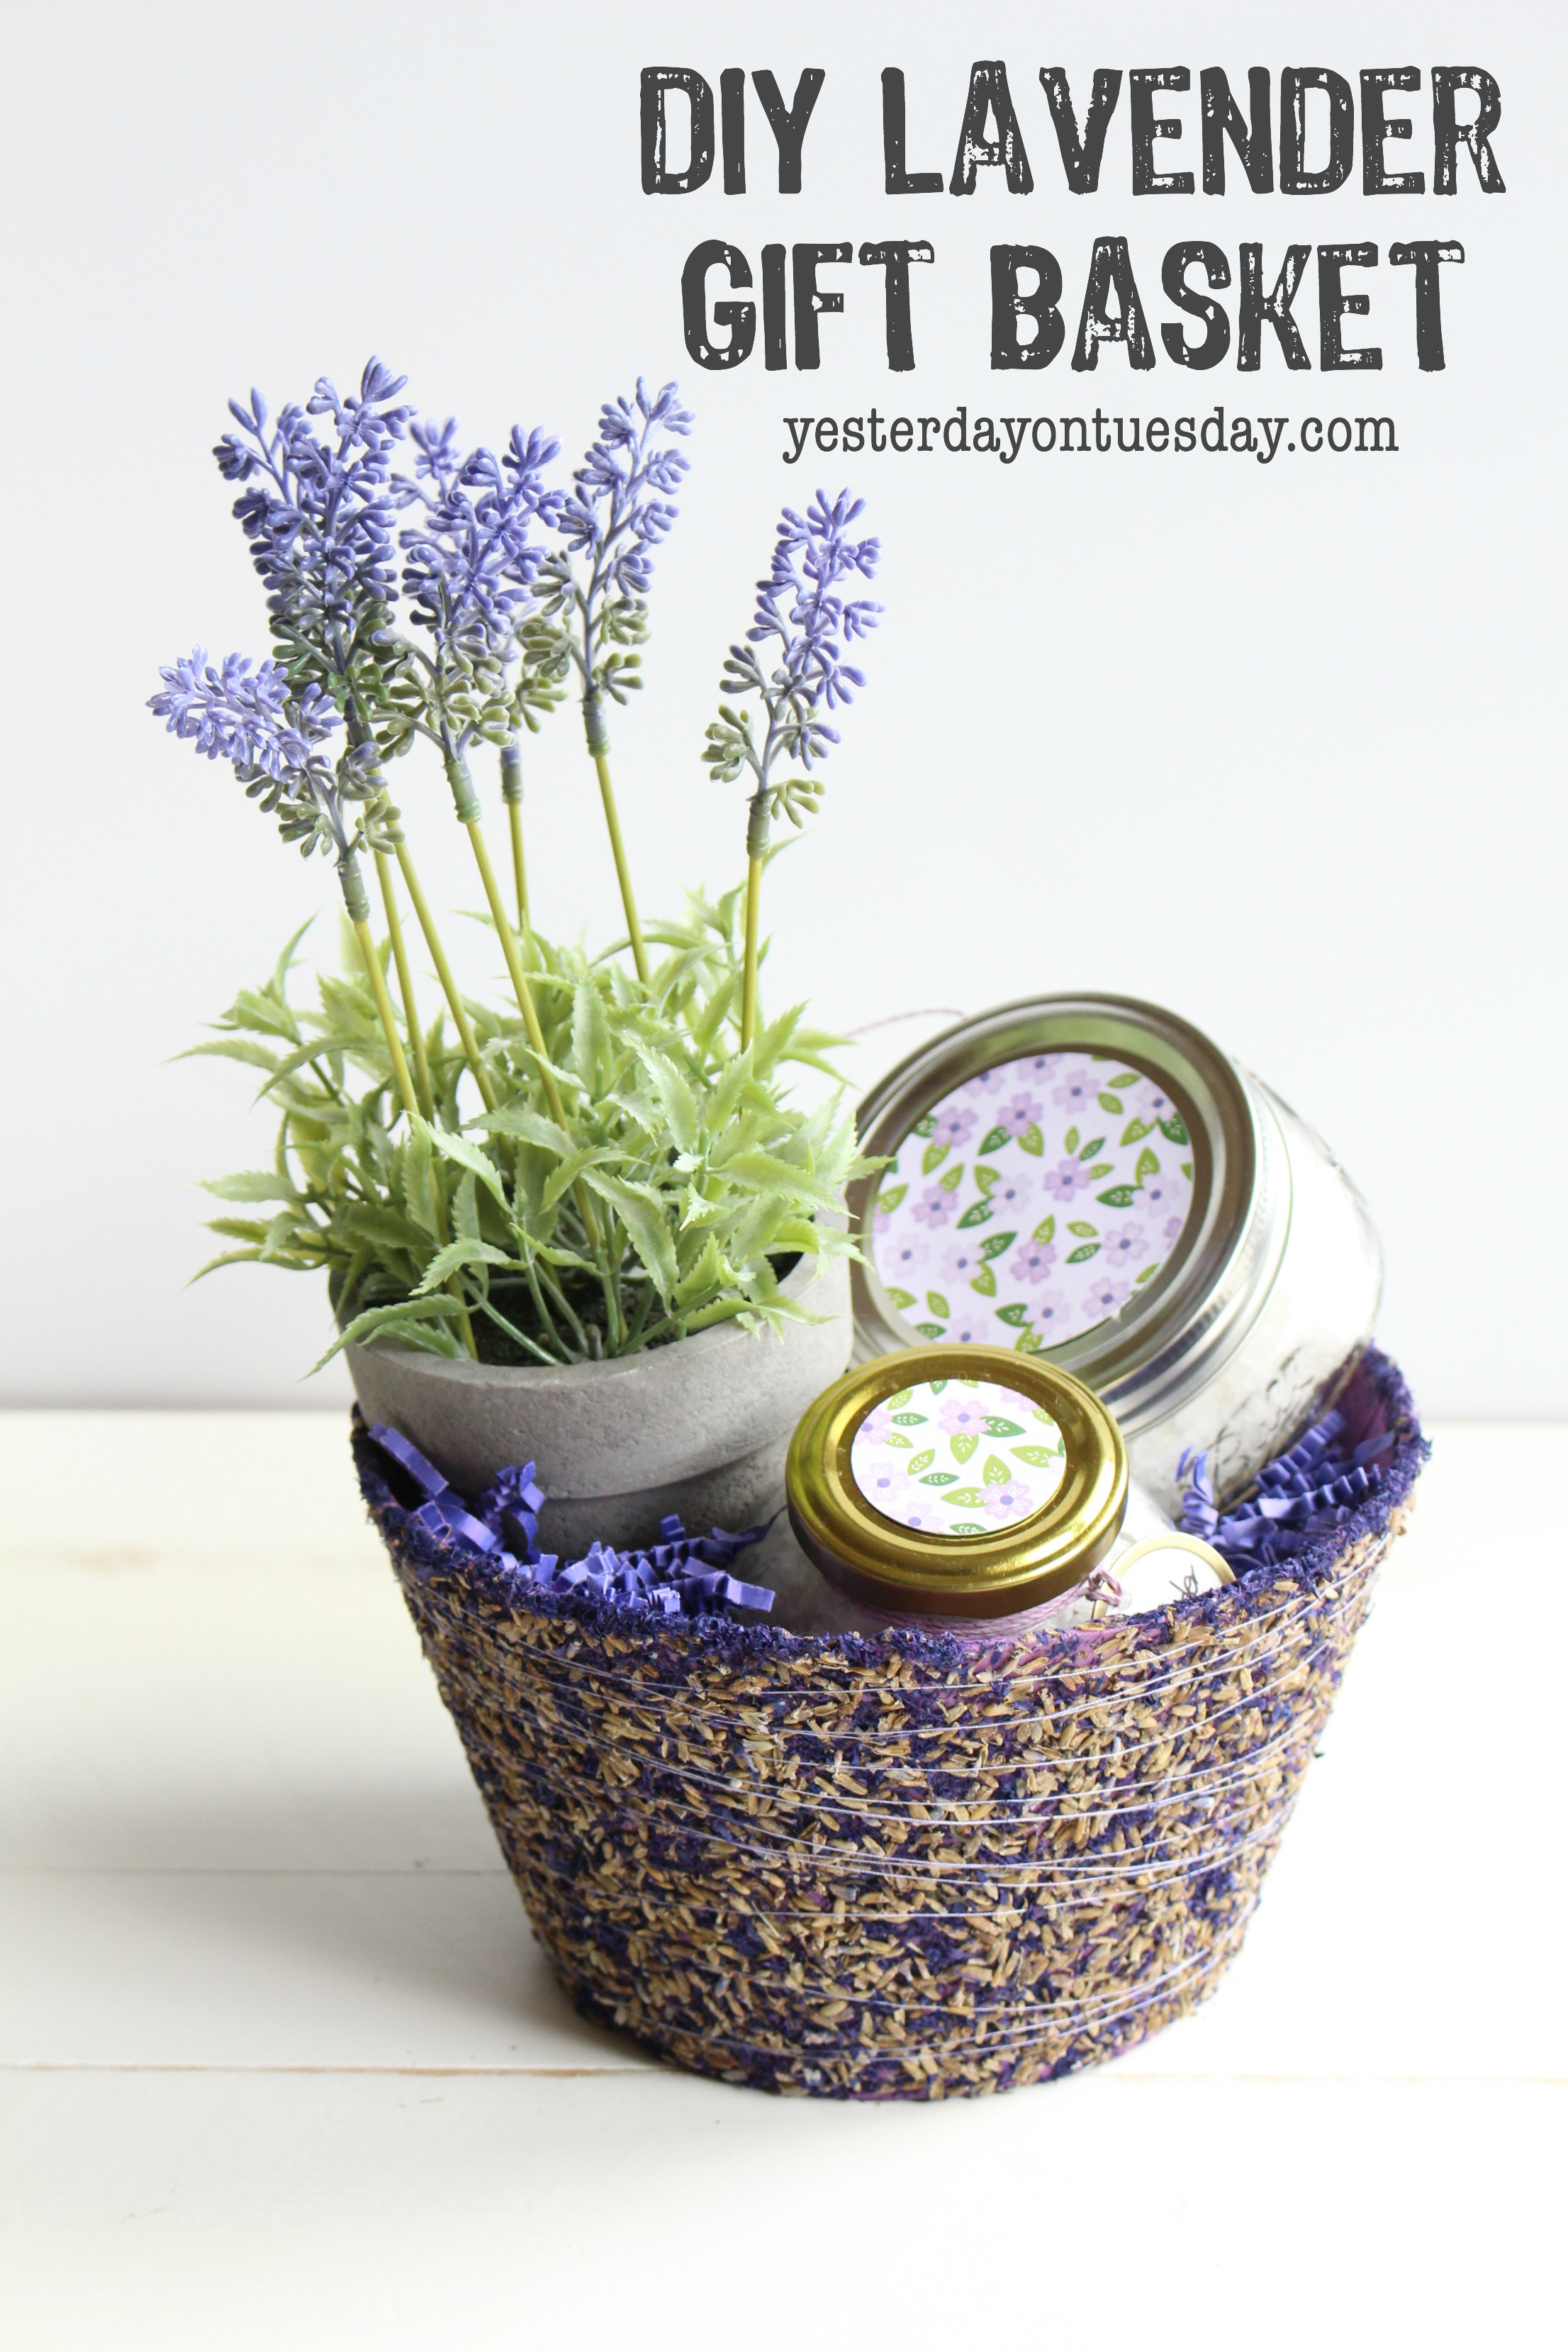 DIY Lavender Bath Salts and Lavender Scrub